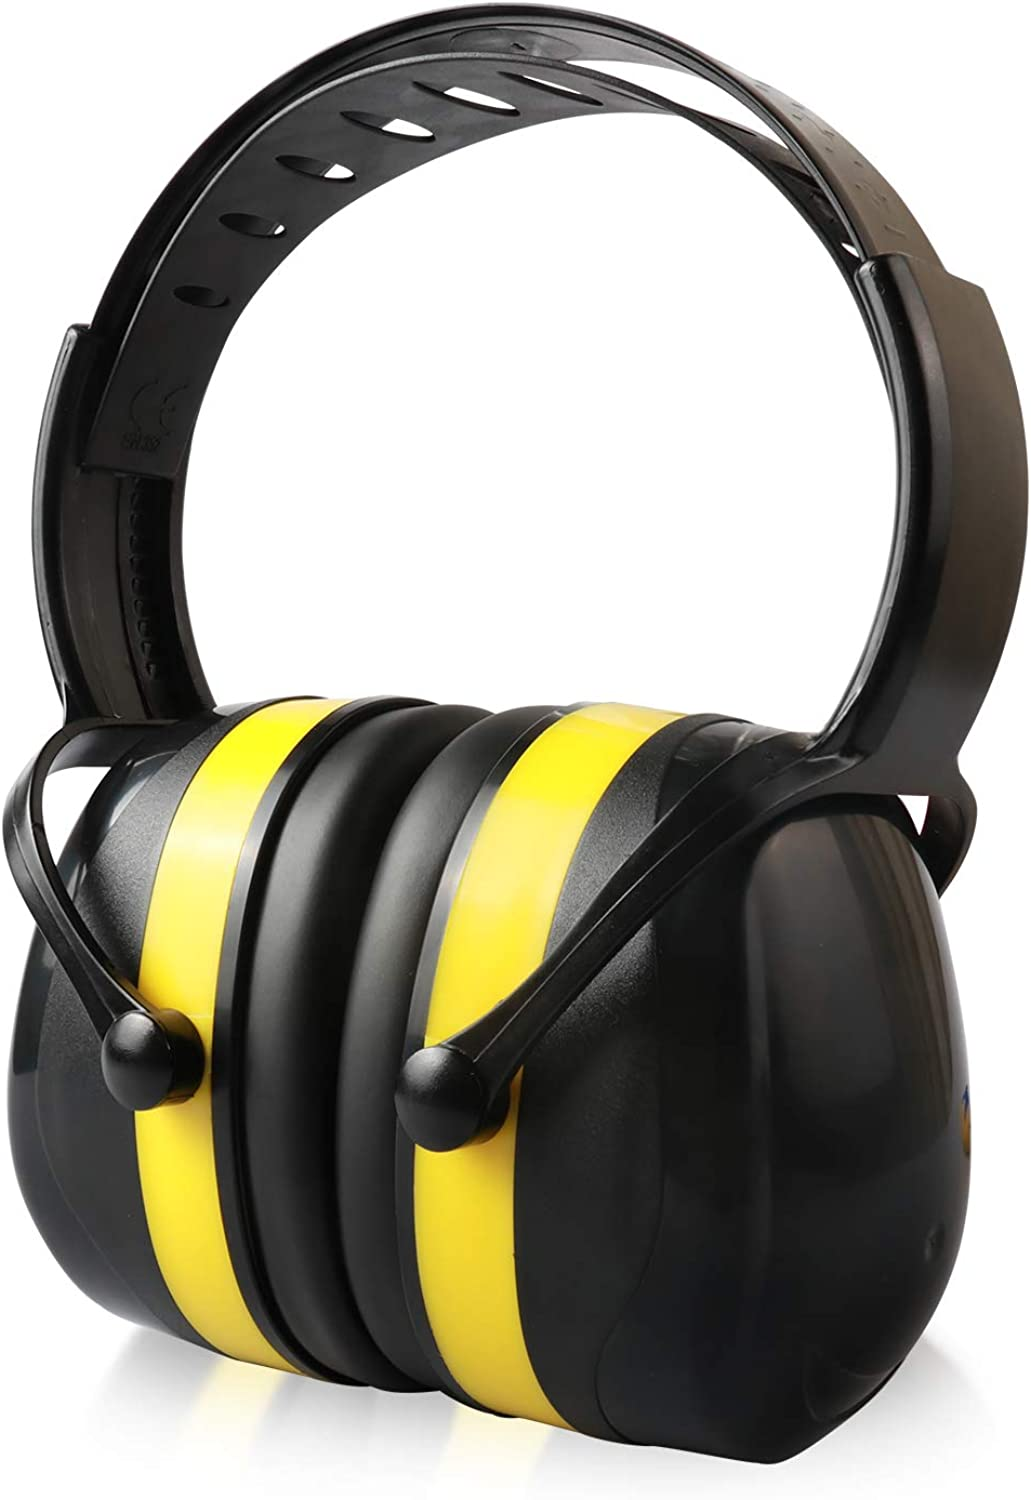 Enegitech Noise Cancelling Ear Muffs 34dB Highest NRR Noise Reduction Safety Earmuffs Hearing Protection with 2 Pairs of Earplugs for Shooting Garden Trimming Landscaping Gifts for Women Men Girls